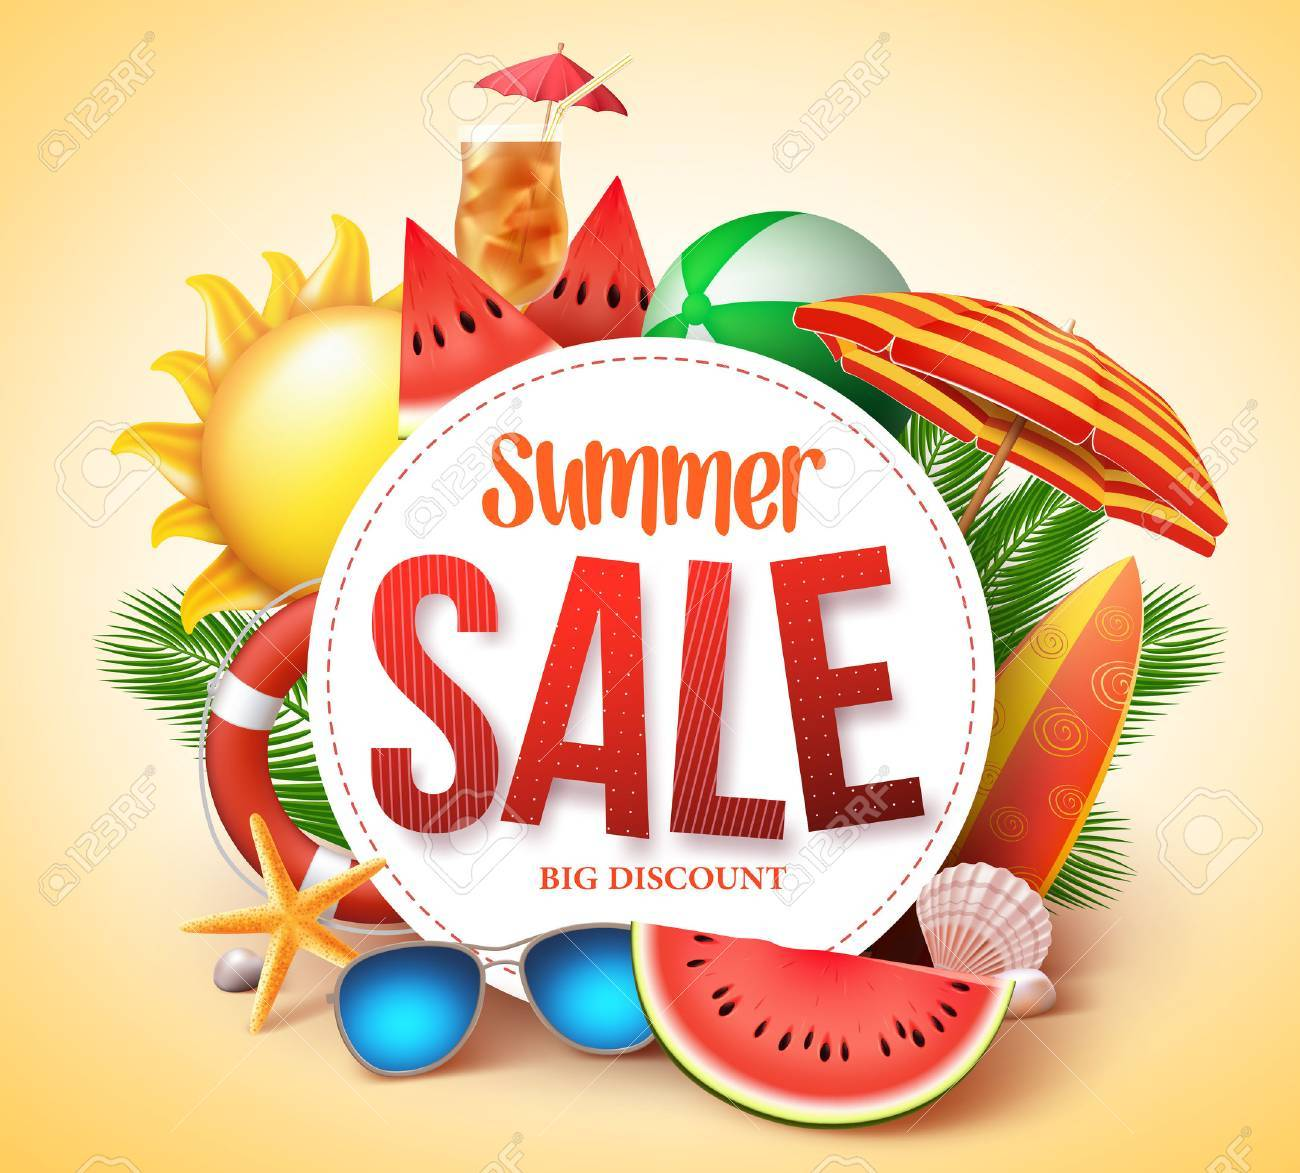 Summer sale vector banner design for promotion with colorful beach elements behind white circle in yellow background. Vector illustration. - 72205253